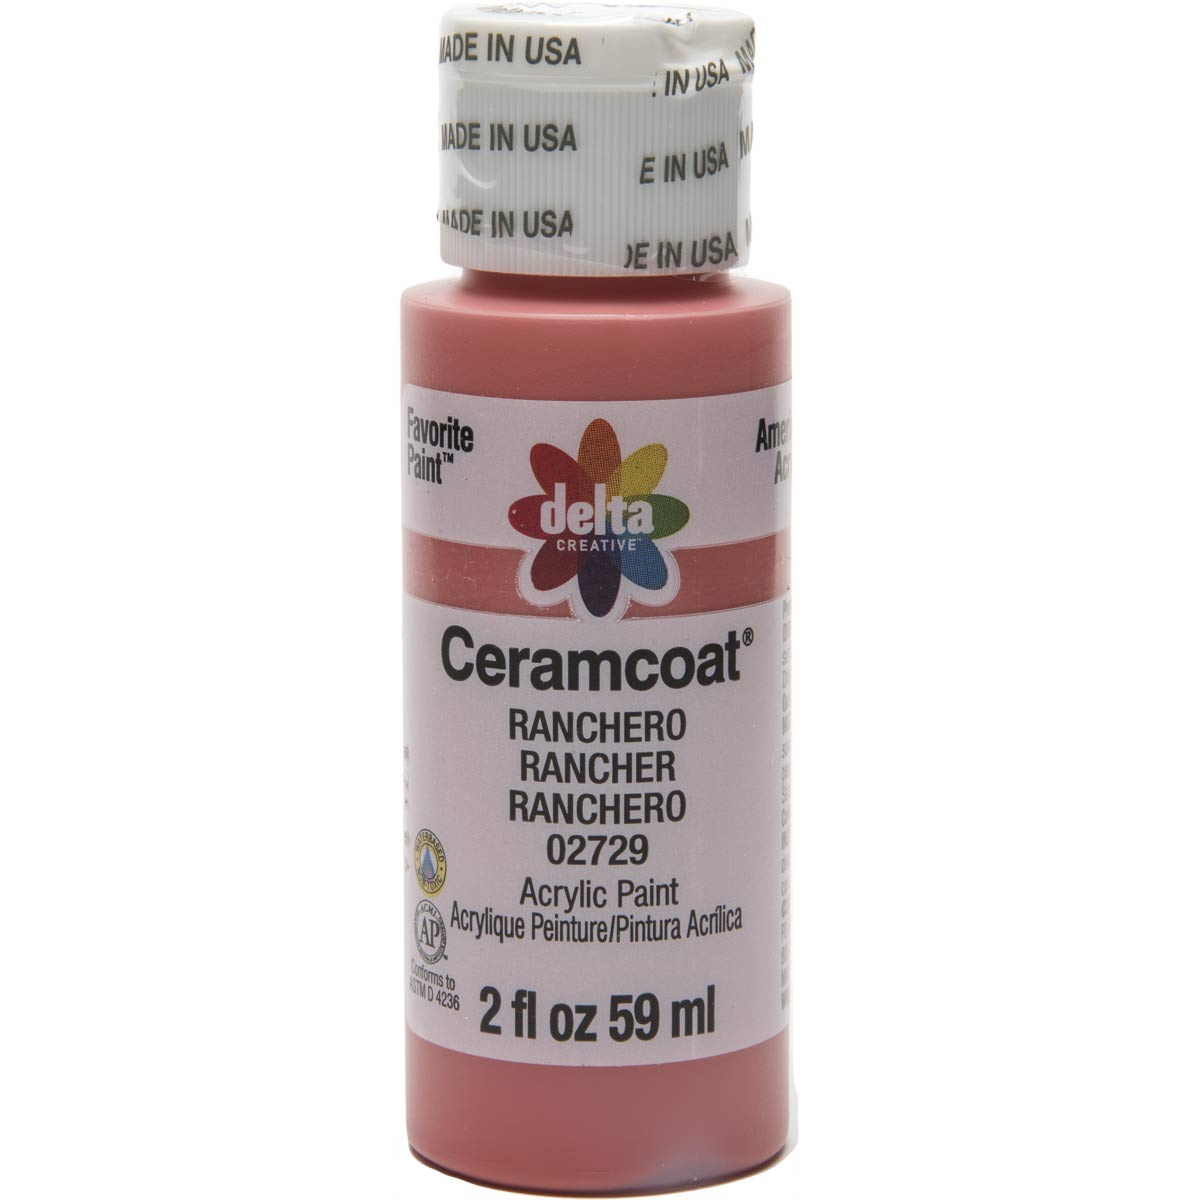 Delta Ceramcoat ® Acrylic Paint - Ranchero, 2 oz. - 02729